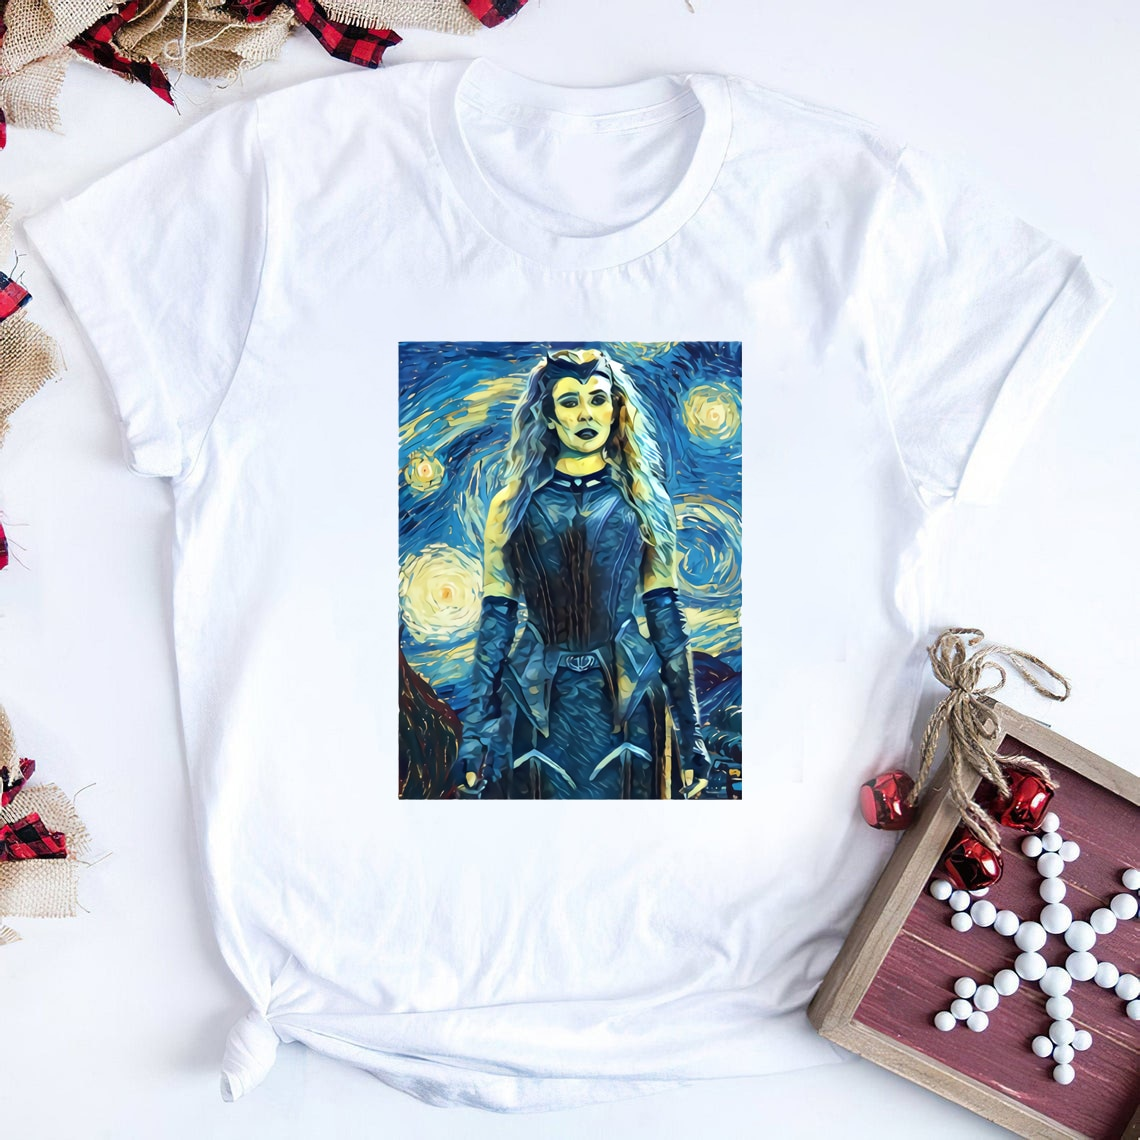 Wanda Maximoff Van Gogh Style T-Shirt Tv Show Wandavision Inspired Tee Funny Scarlet Witch Graphic Tee Aesthetic Tops